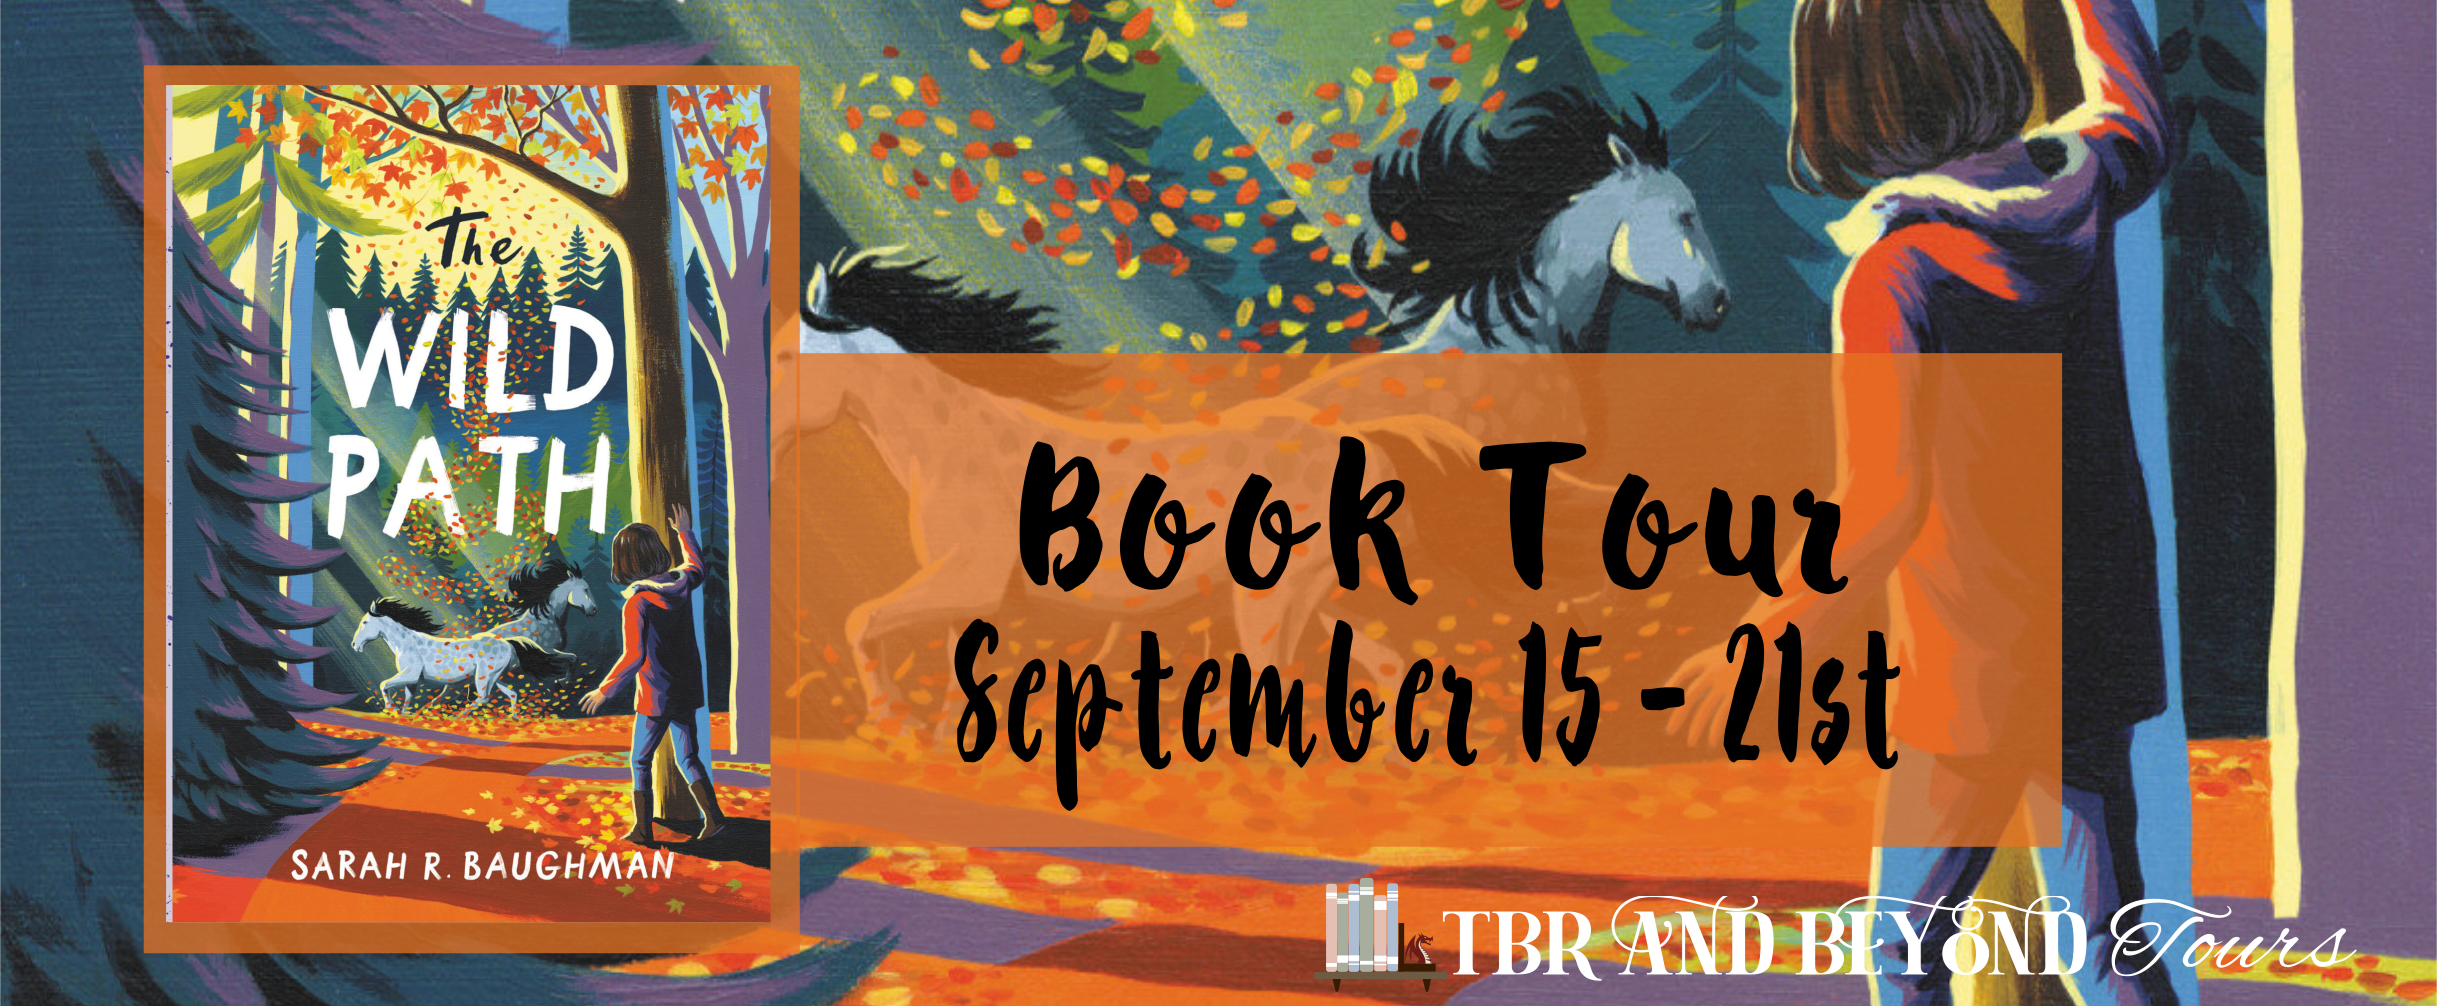 Blog Tour: The Wild Path by Sarah R. Baughman (Interview + Giveaway!)